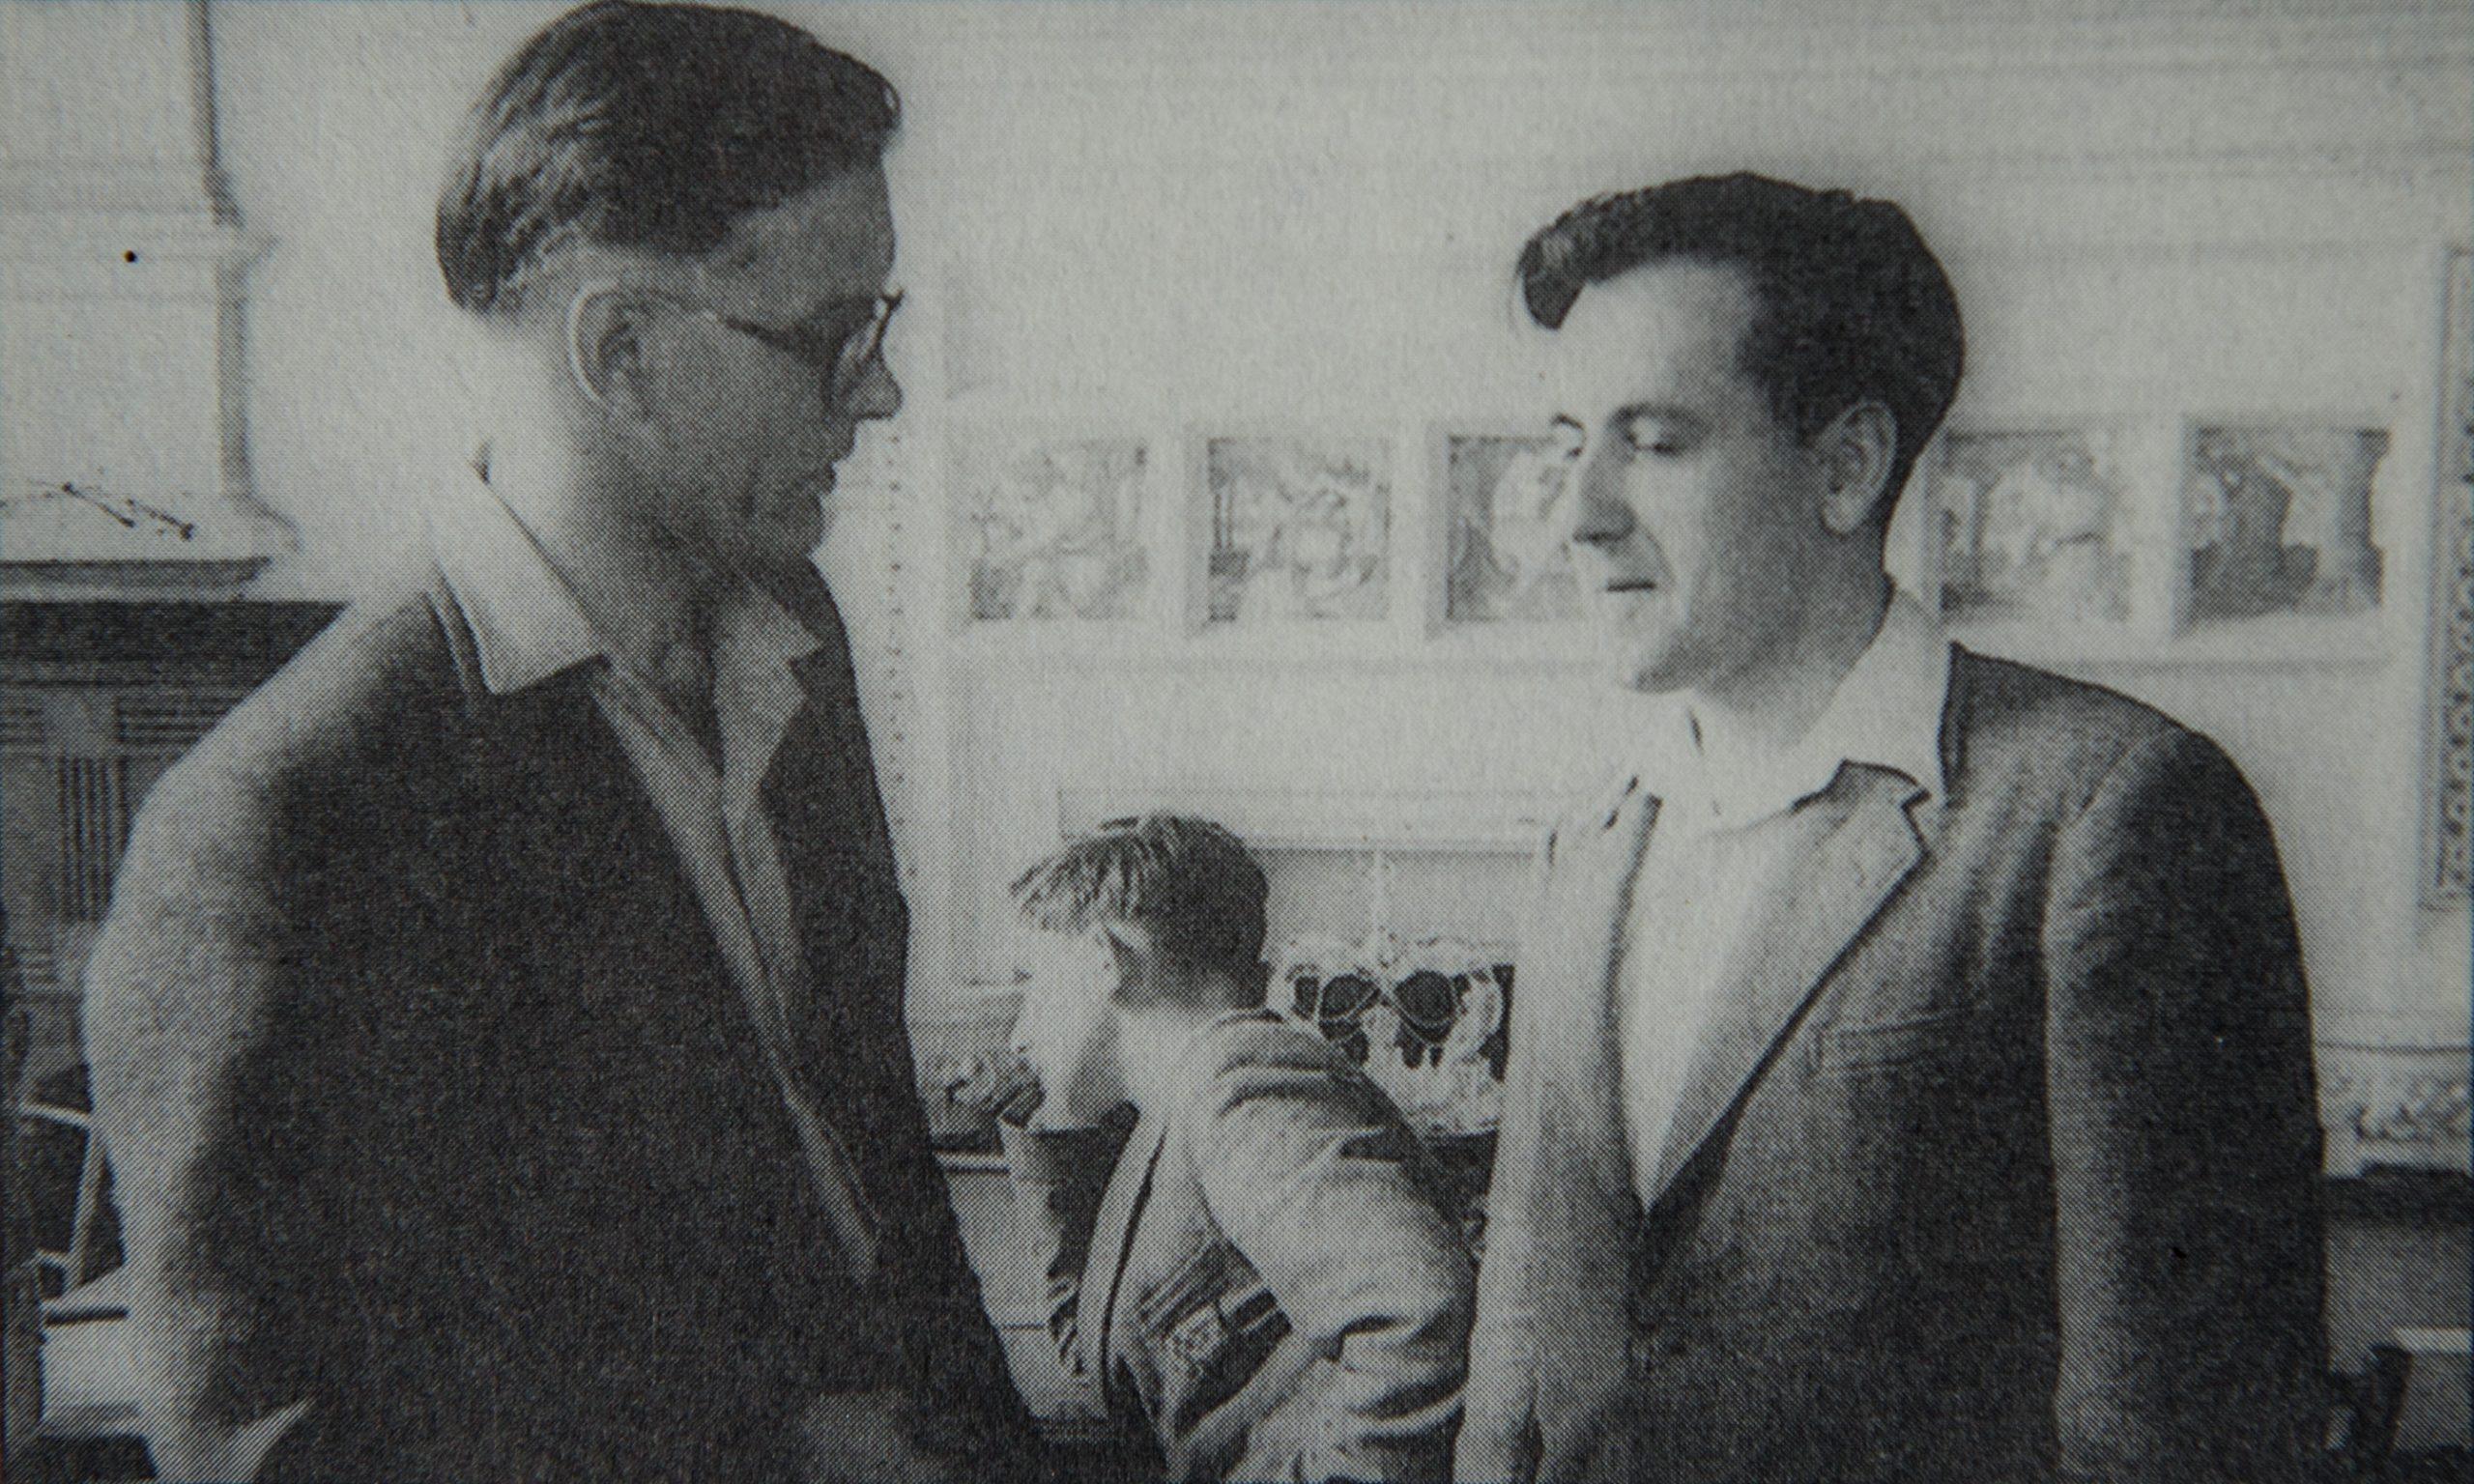 David Hooper (left) in conversation with Alan Phillips. Location and photographer unknown.